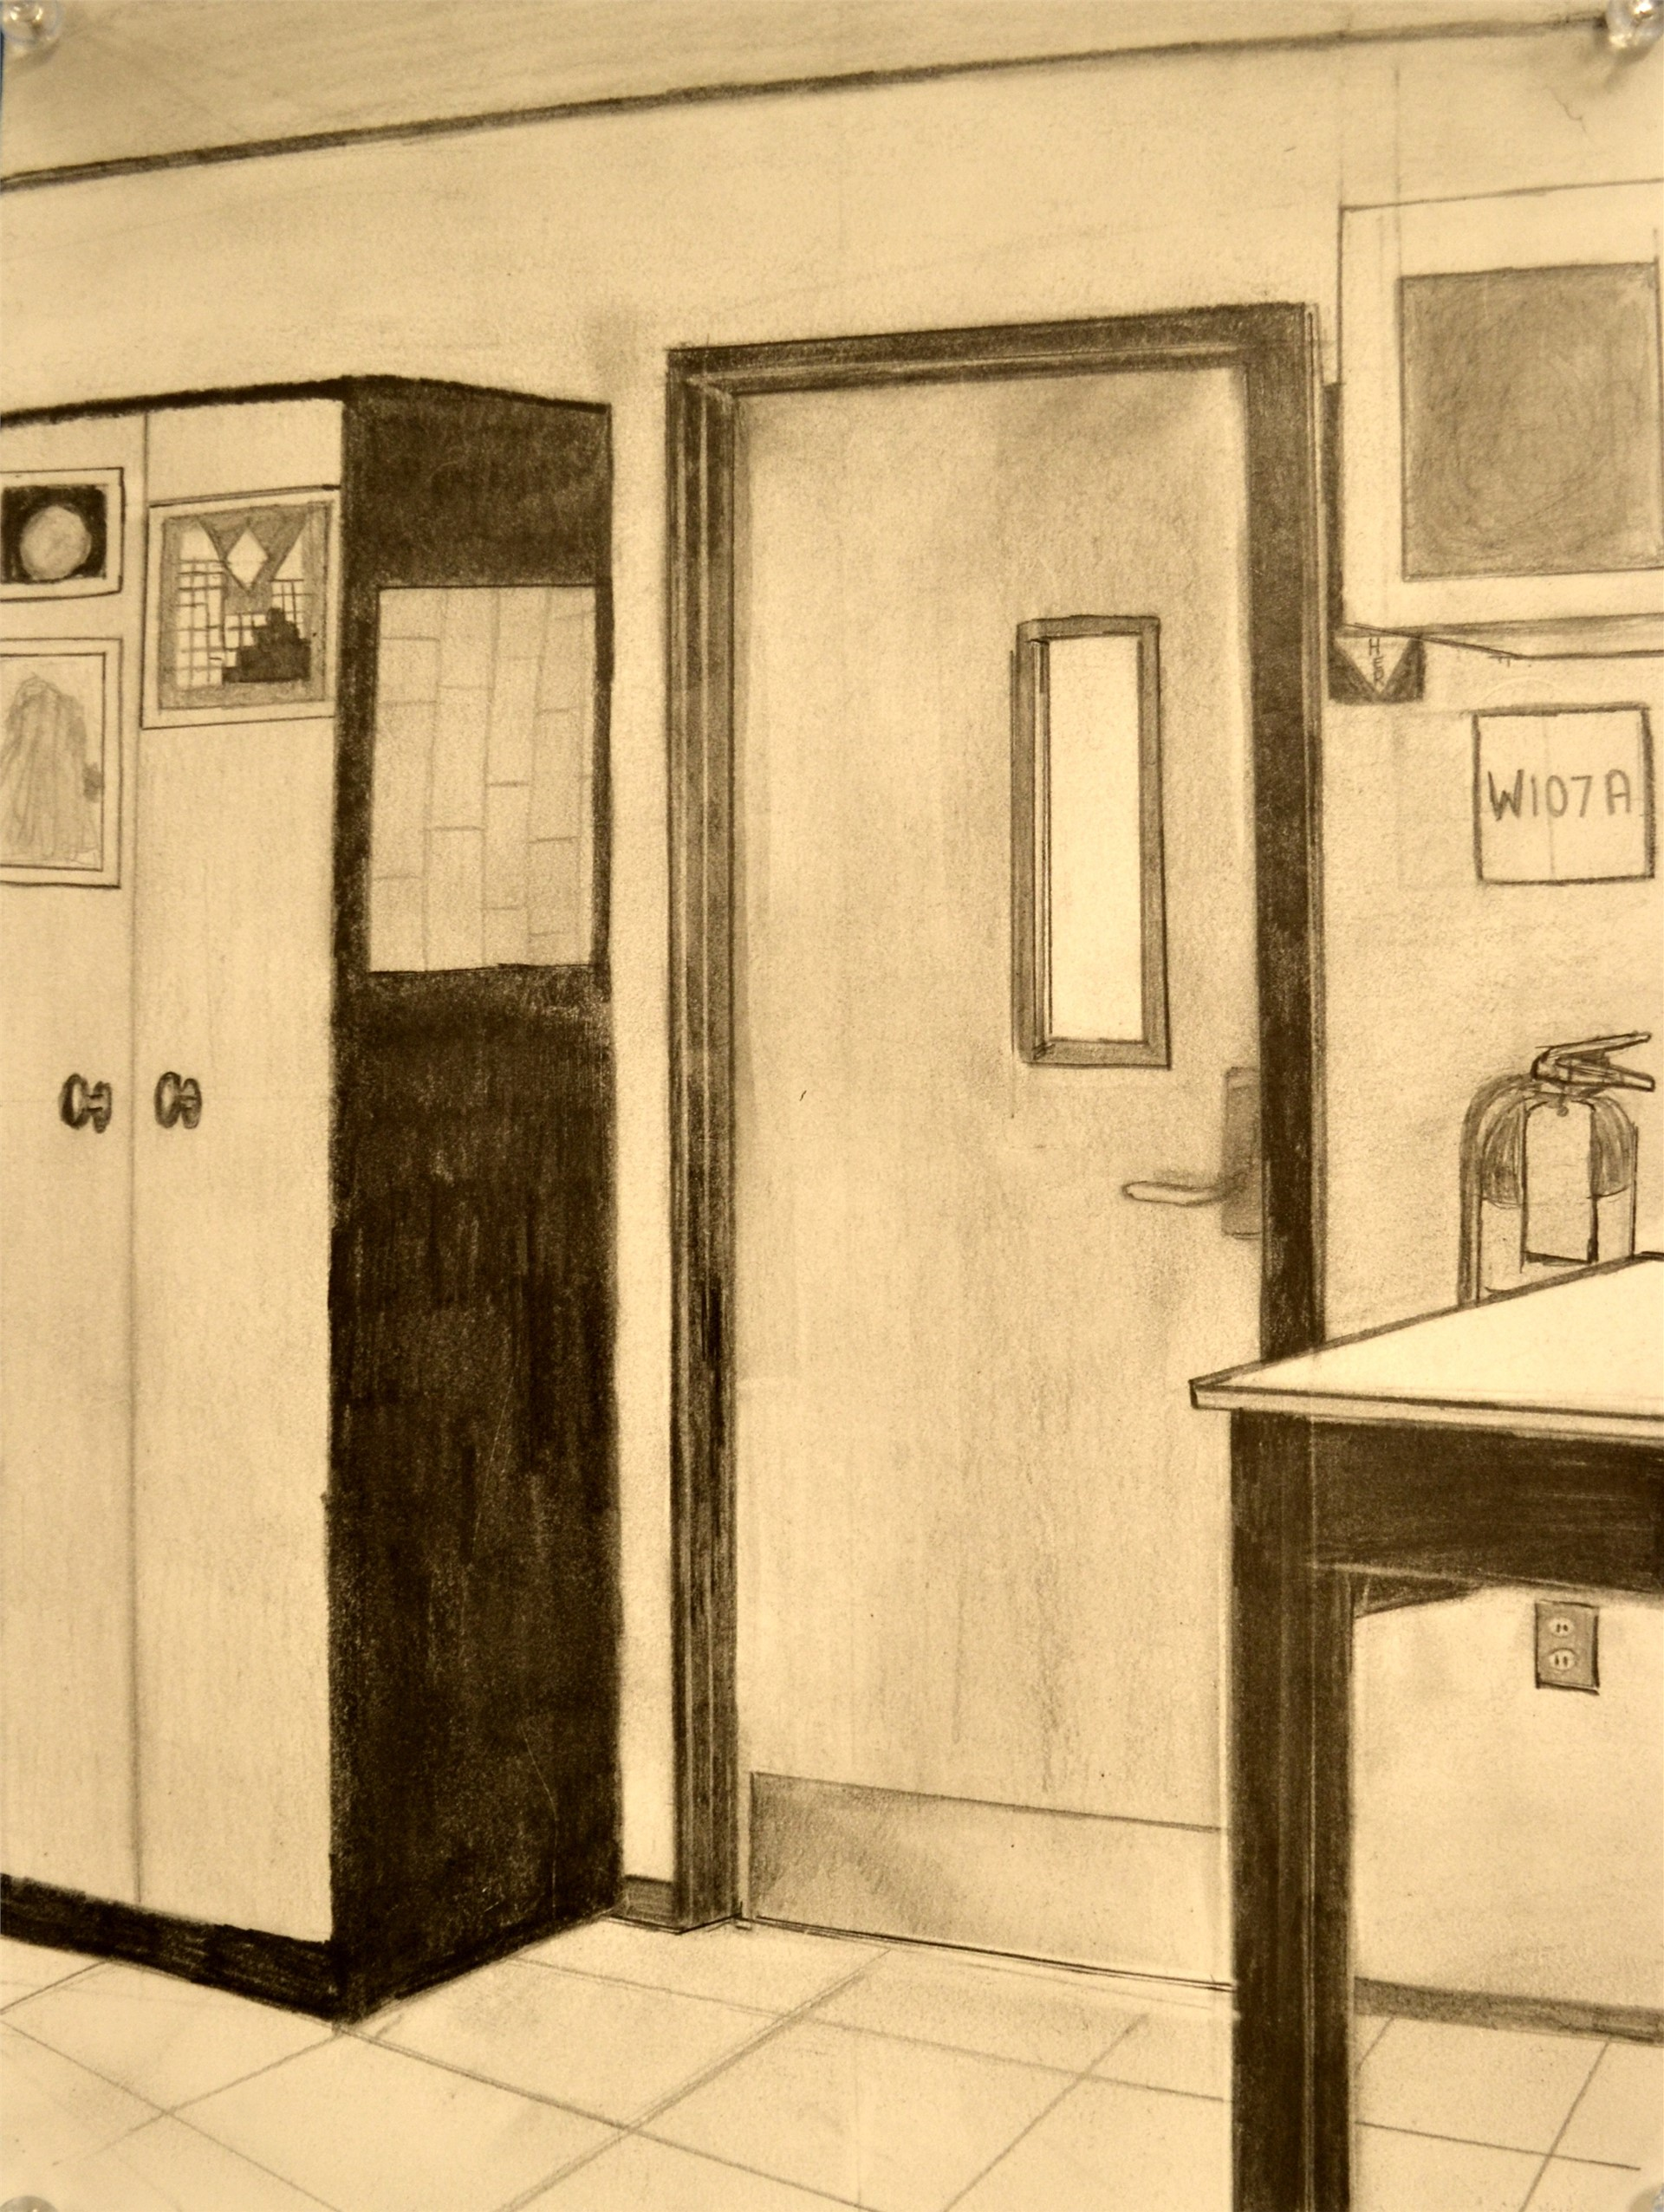 PIPER UMBRA, Kiln Room Door, graphite, 12 x 9, 2015